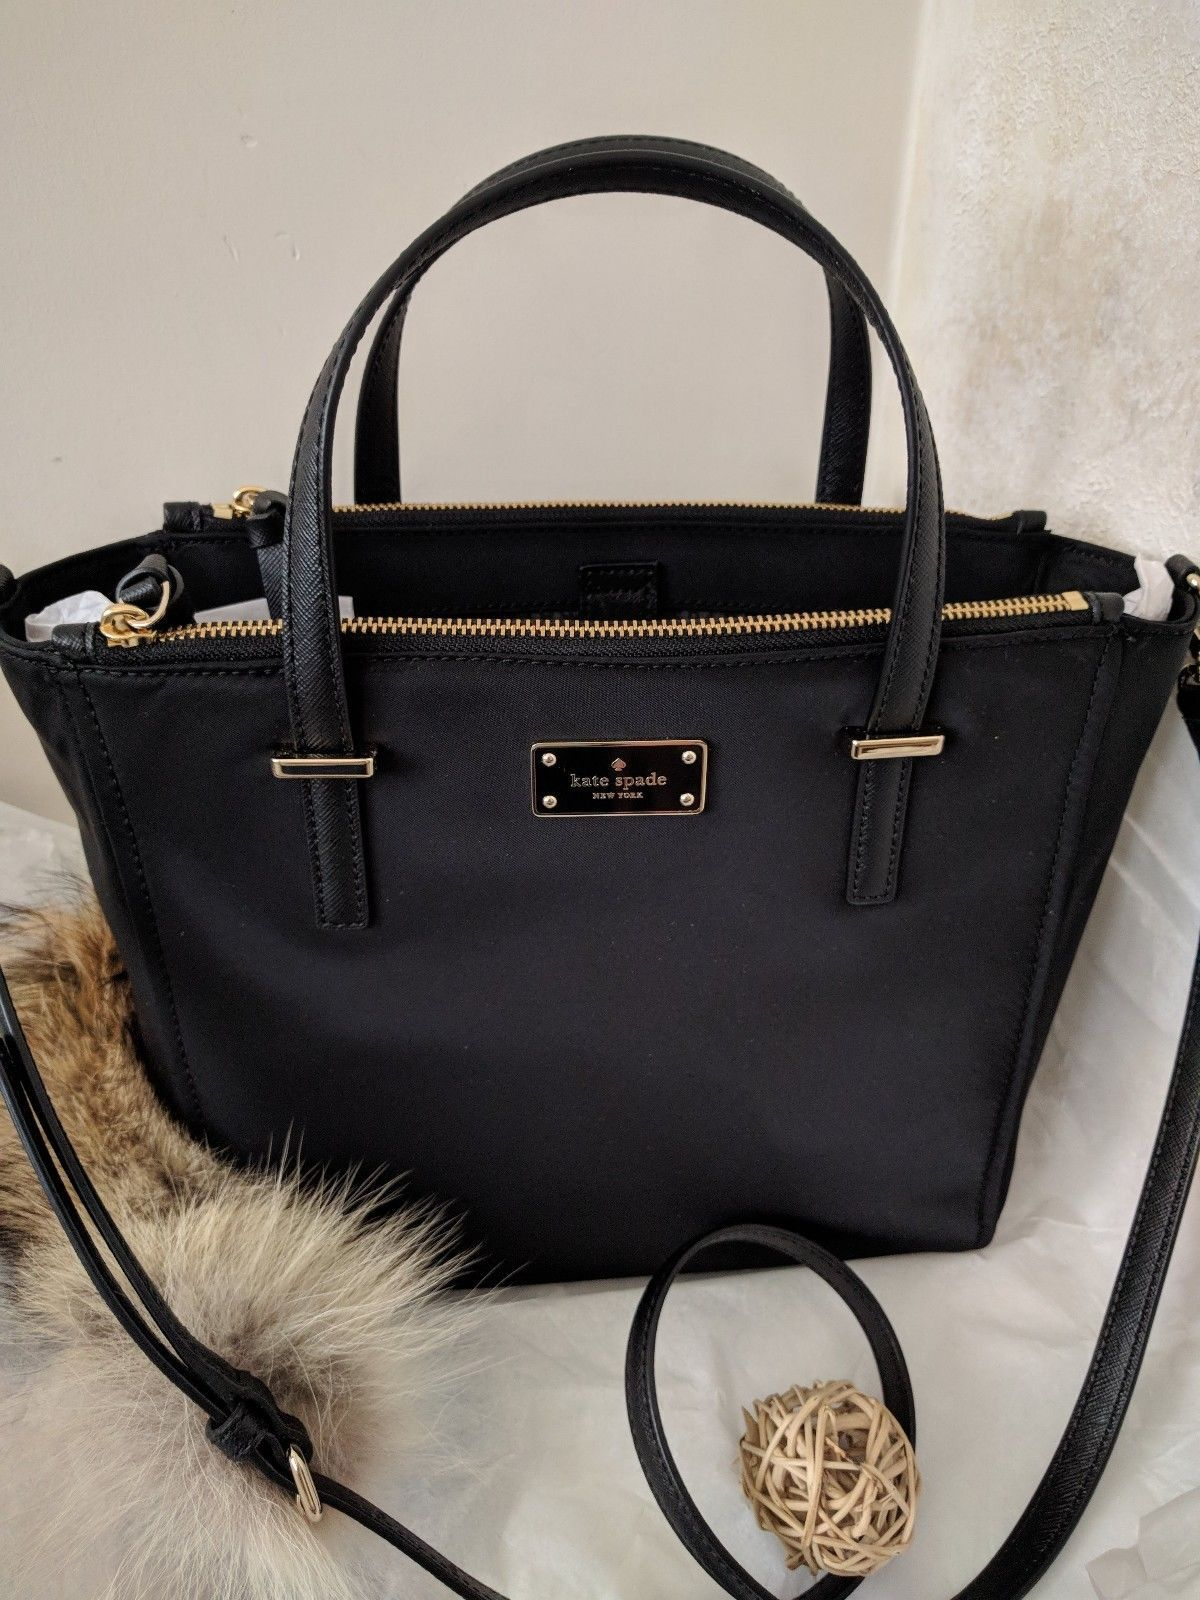 9ca731d86ed53 NWT KATE SPADE ALYSE WILSON ROAD BLACK NYLON MED TOTE Crossbody  4MOM